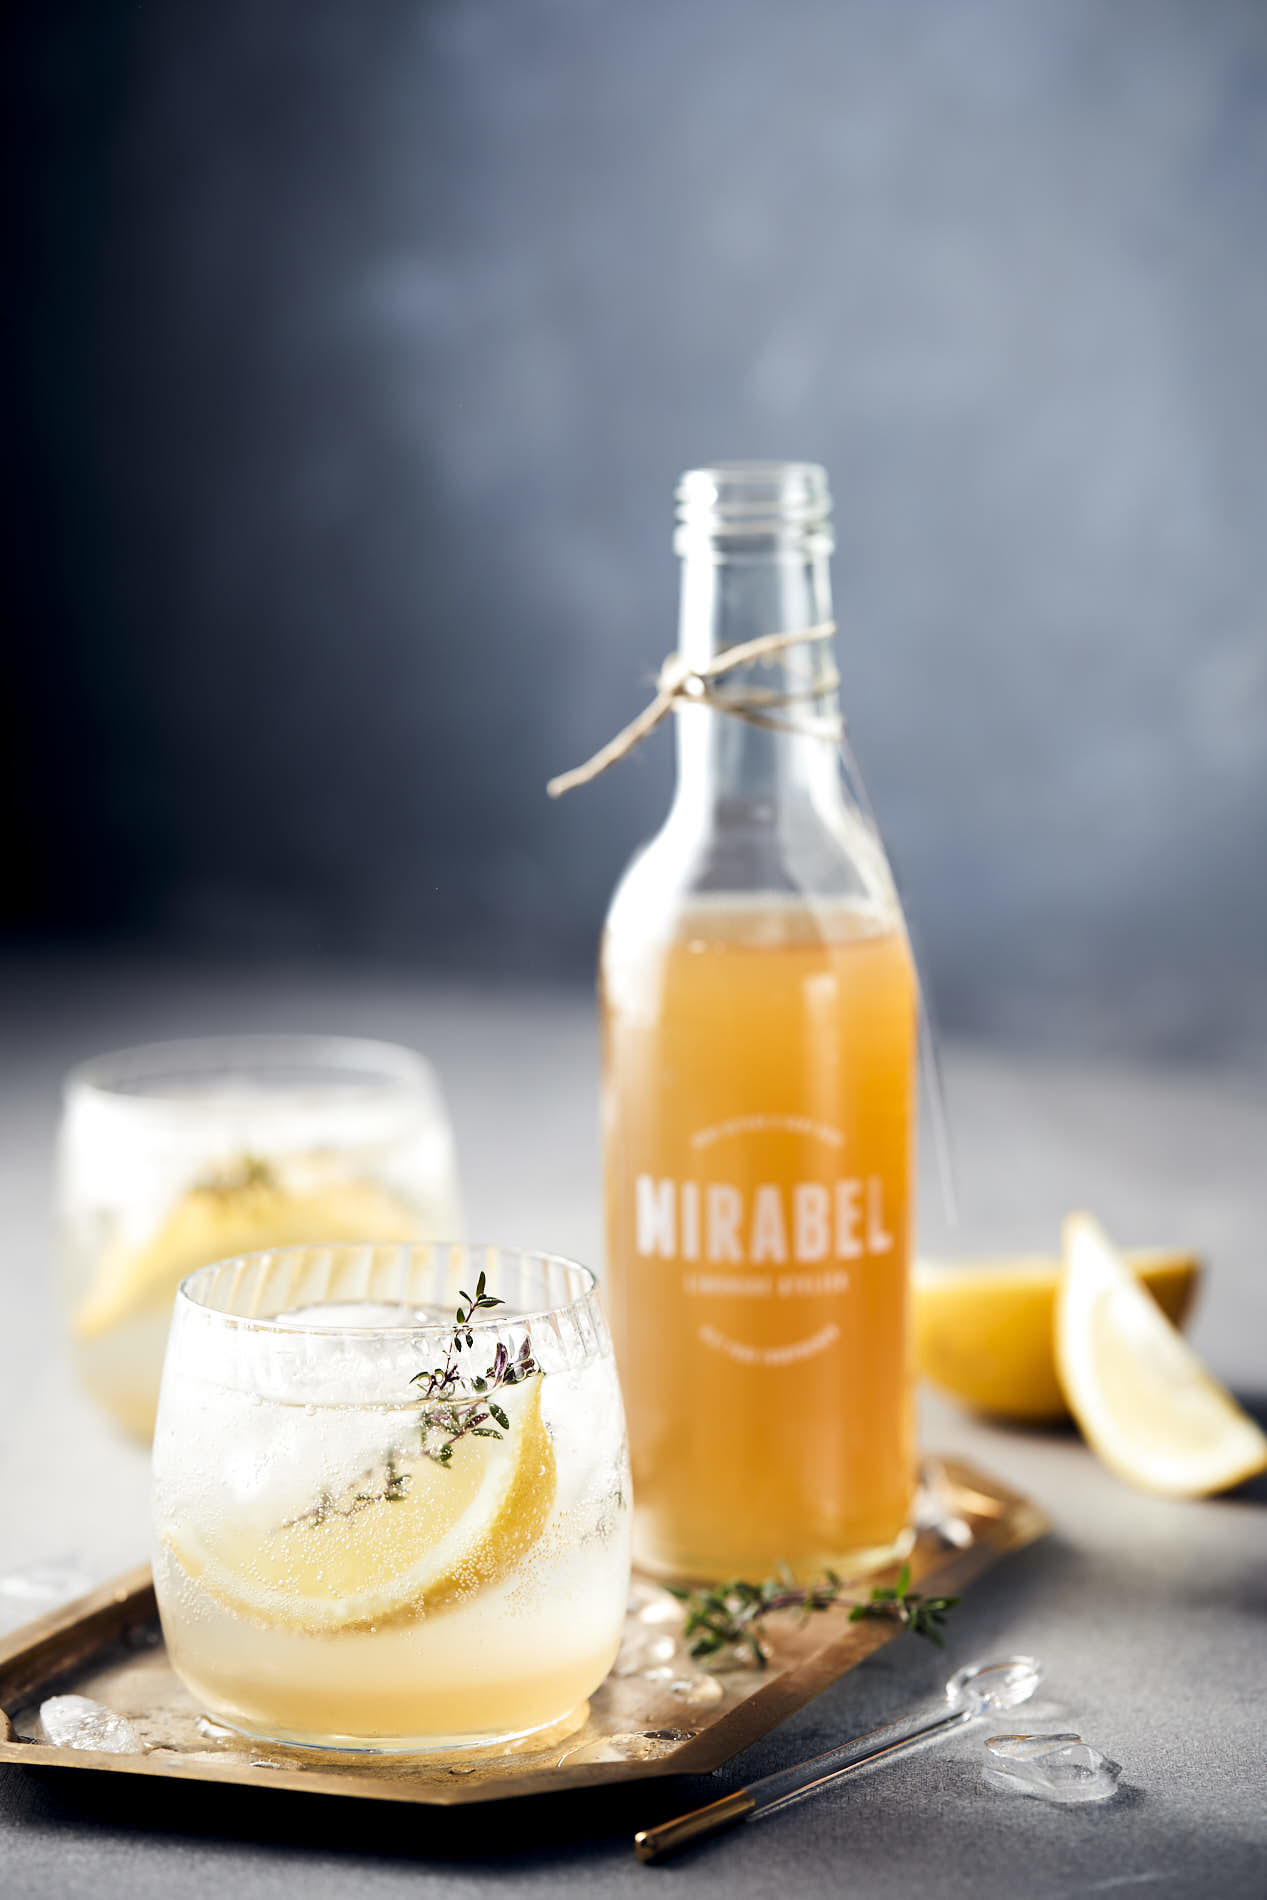 food photo by French Beans of a bottle of lemon-thyme syrup by Mirabel with two glasses of lemonade